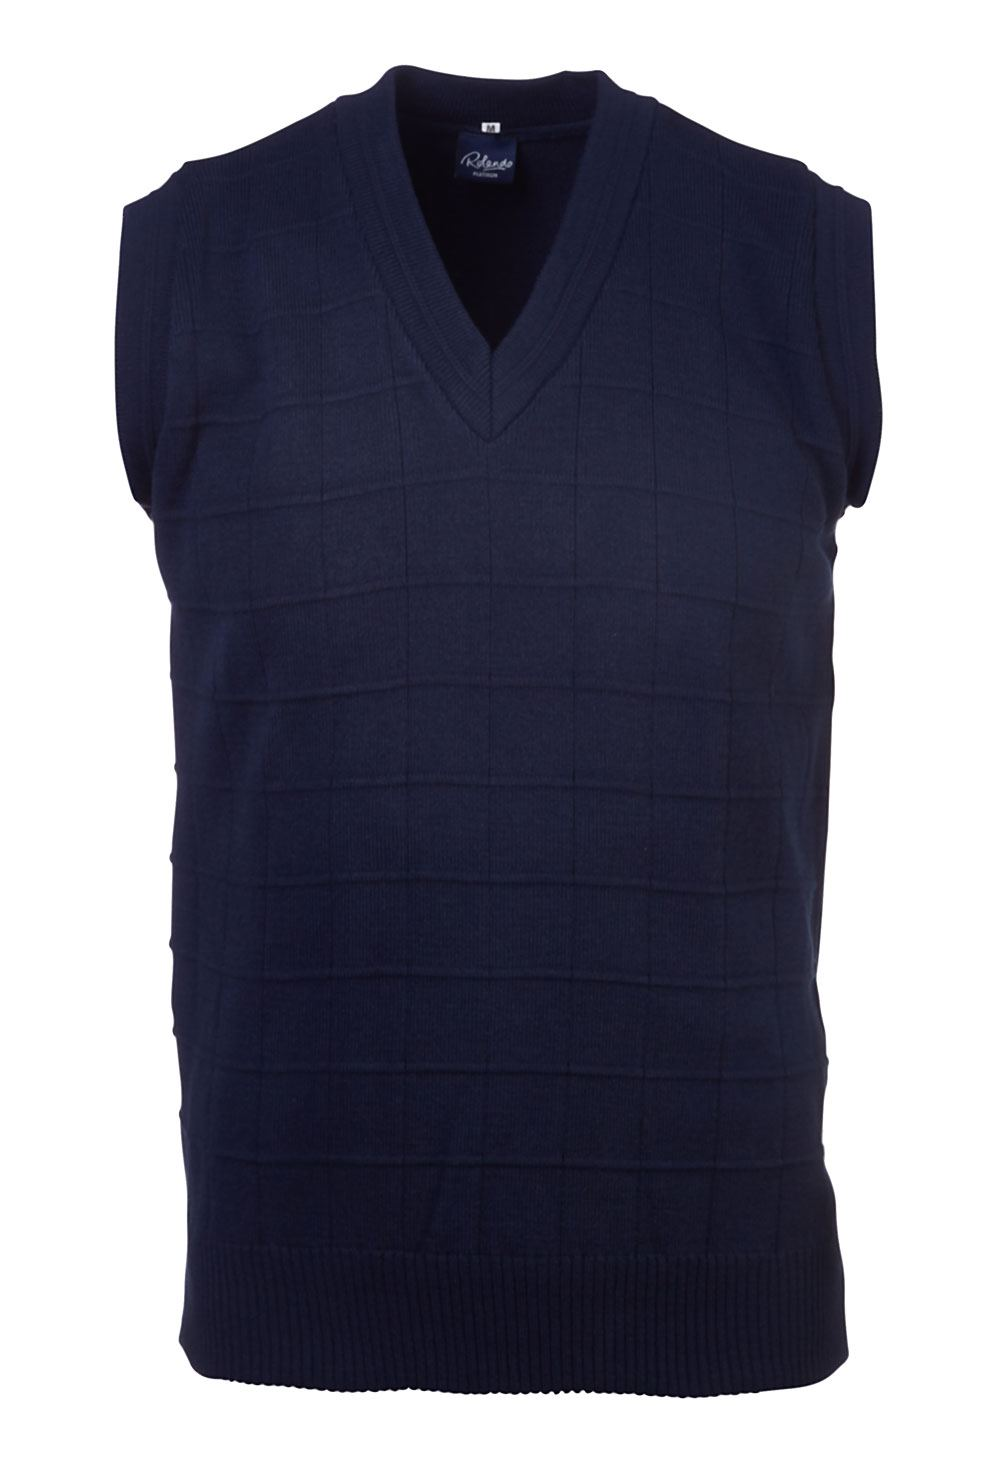 Mens Sleeveless Delux Jersey - Navy